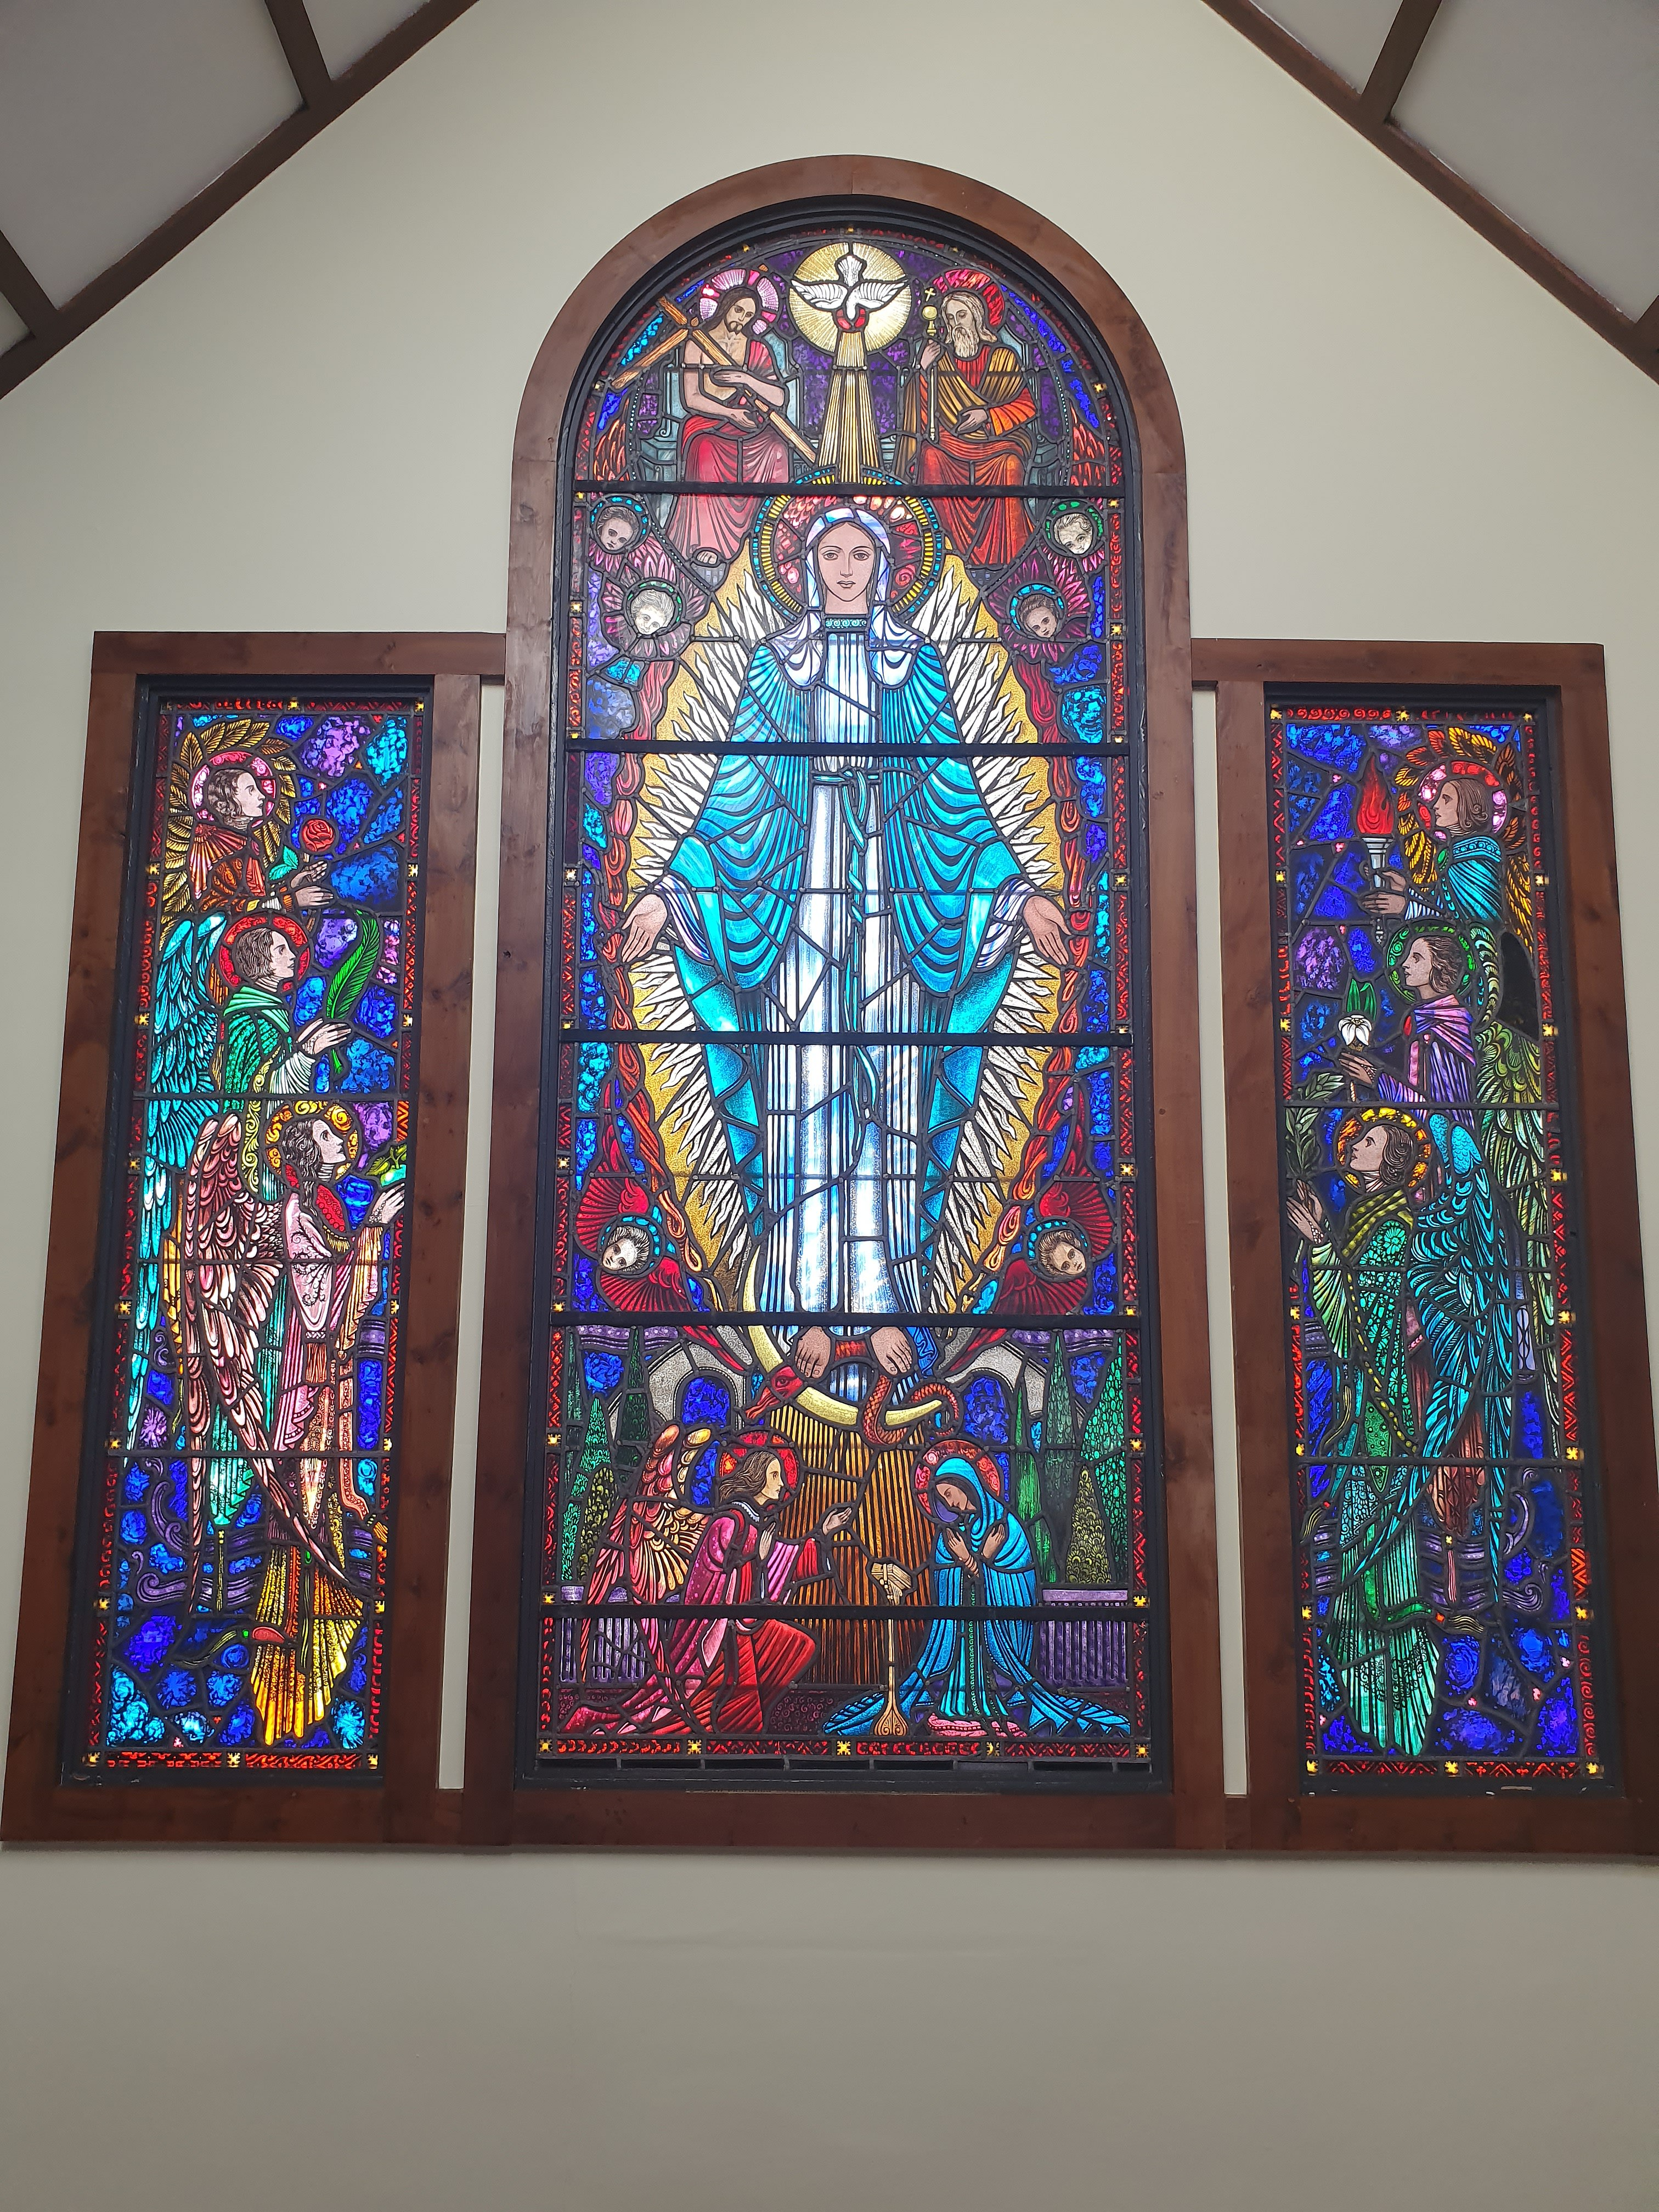 File:Stained glass window, St. Thomas Church, Castleknock